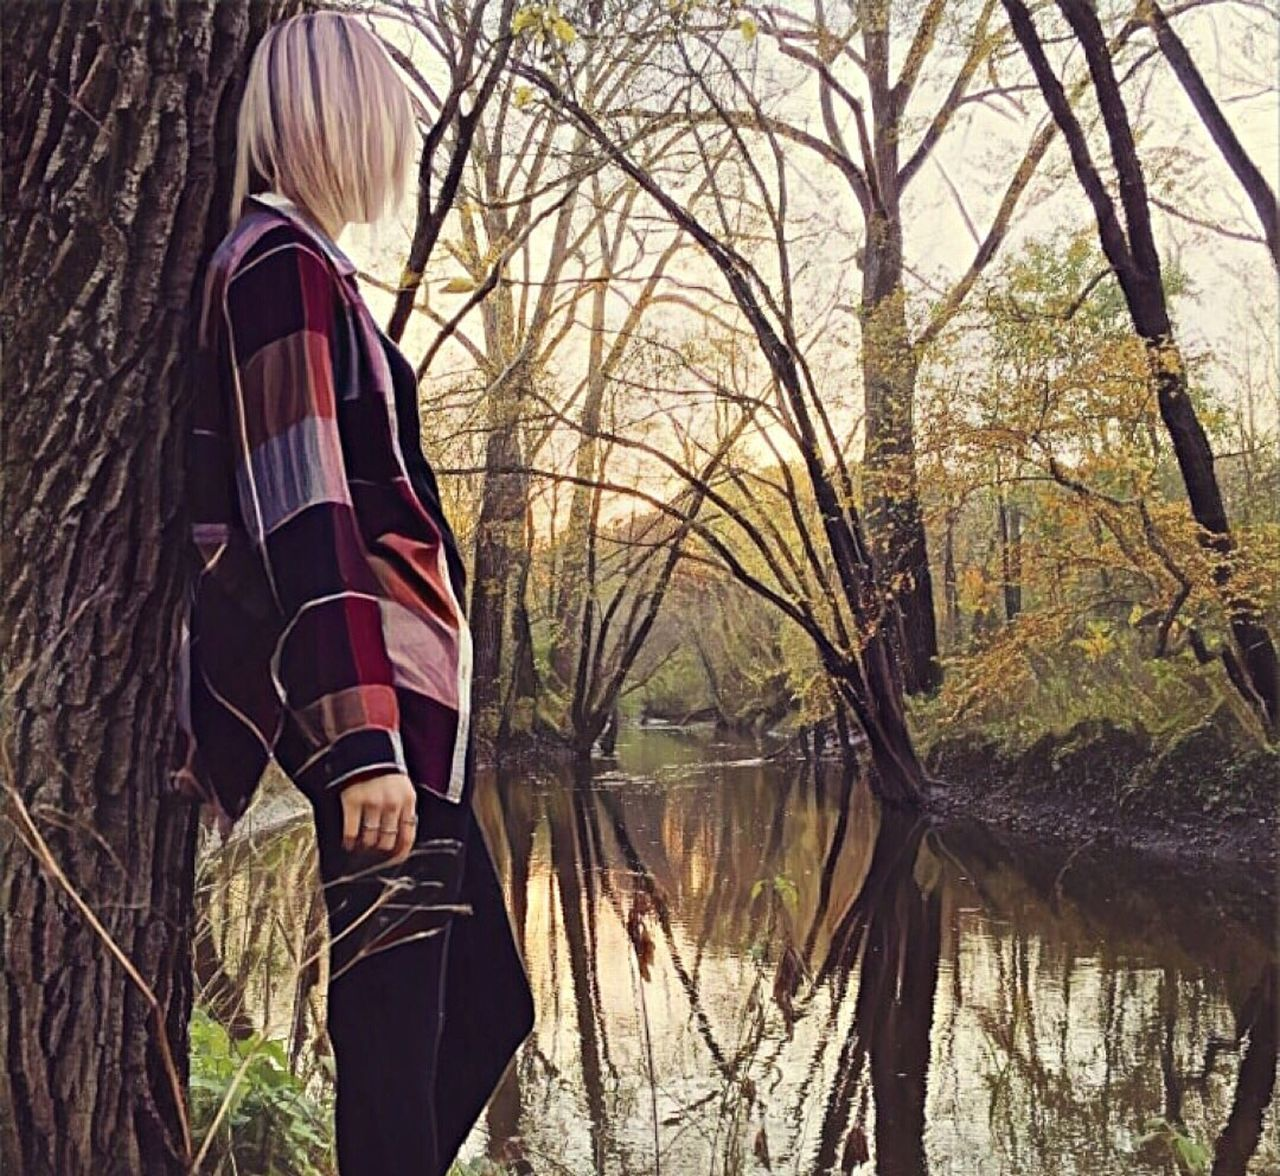 real people, tree, lifestyles, bare tree, one person, leisure activity, tree trunk, standing, outdoors, rear view, branch, casual clothing, day, water, nature, lake, forest, men, women, beauty in nature, sky, people